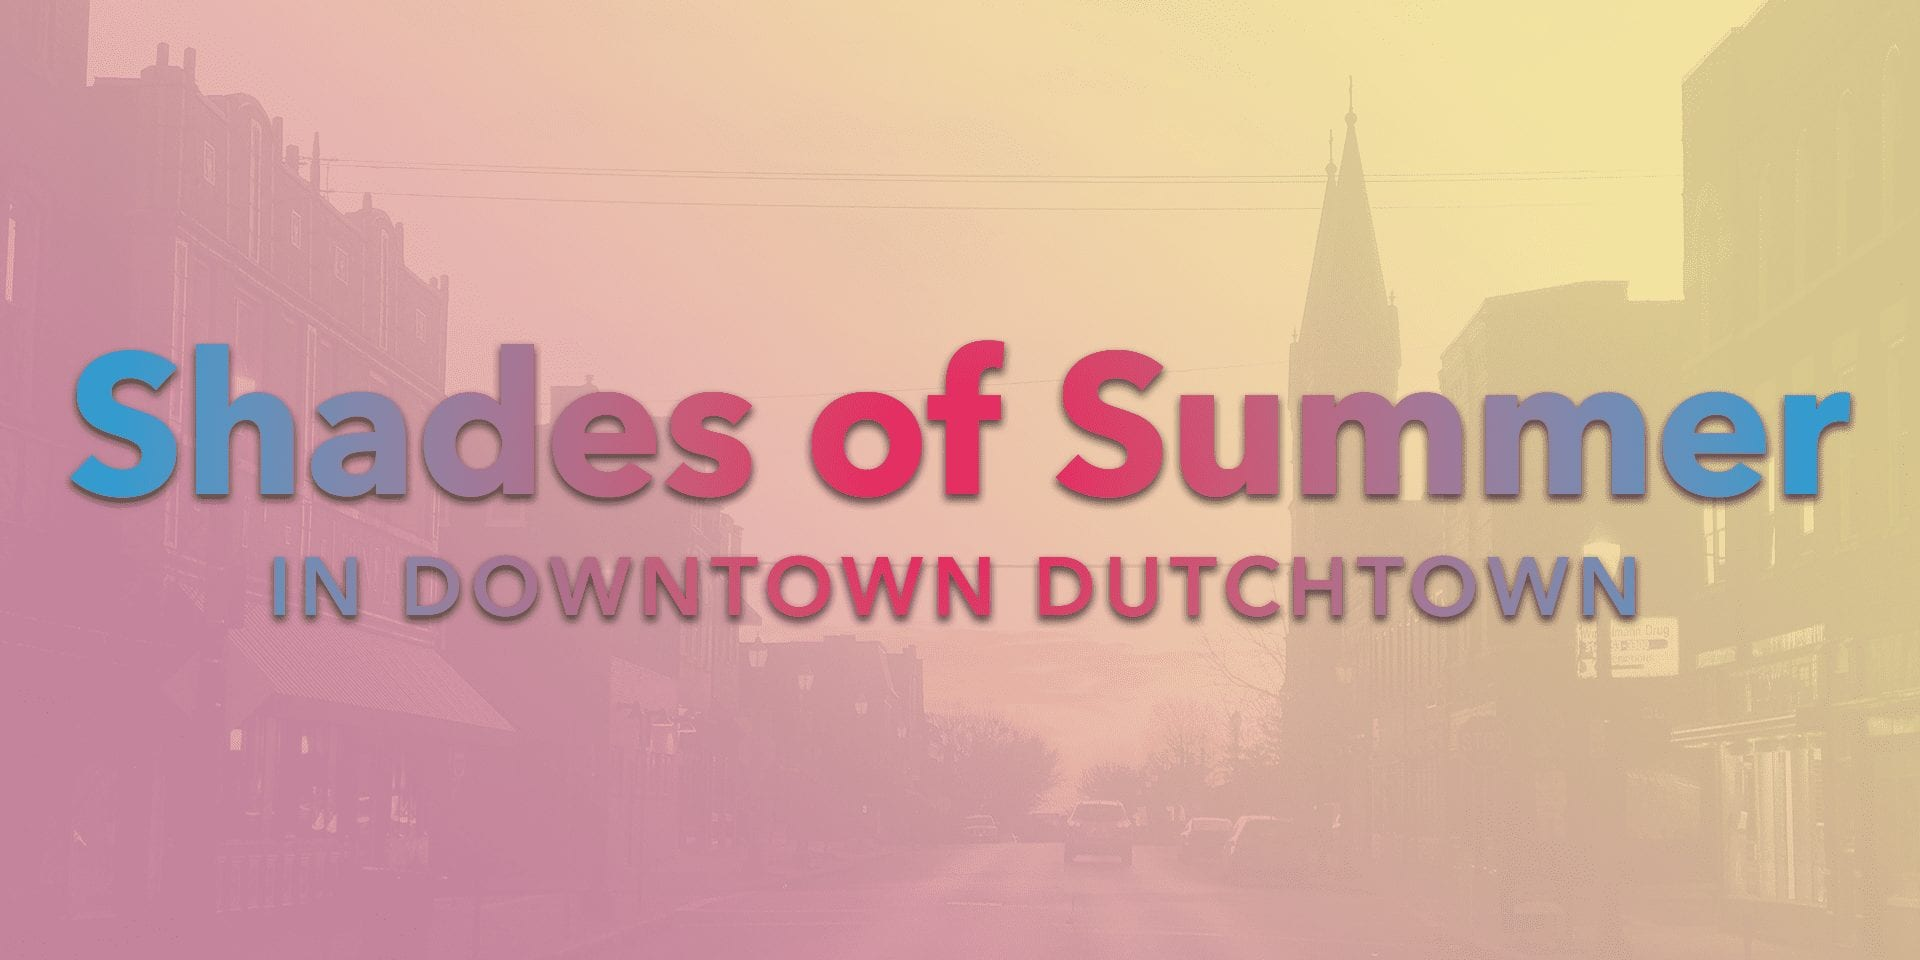 Shades of Summer in Downtown Dutchtown.